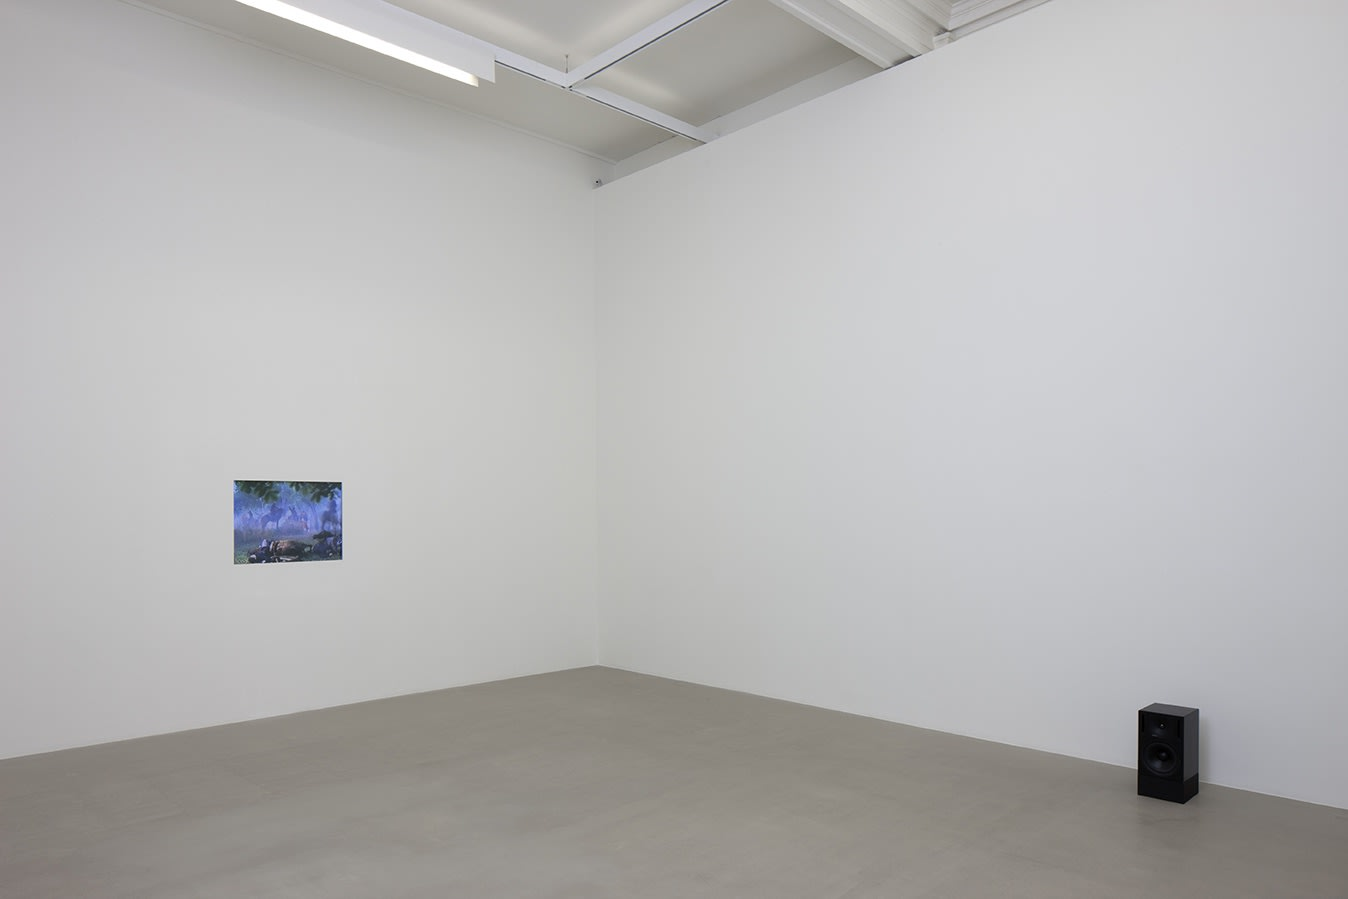 A small screen embedded in the wall and a black speaker sit in a white room. The screen, barely visible, displays horses and foliage.